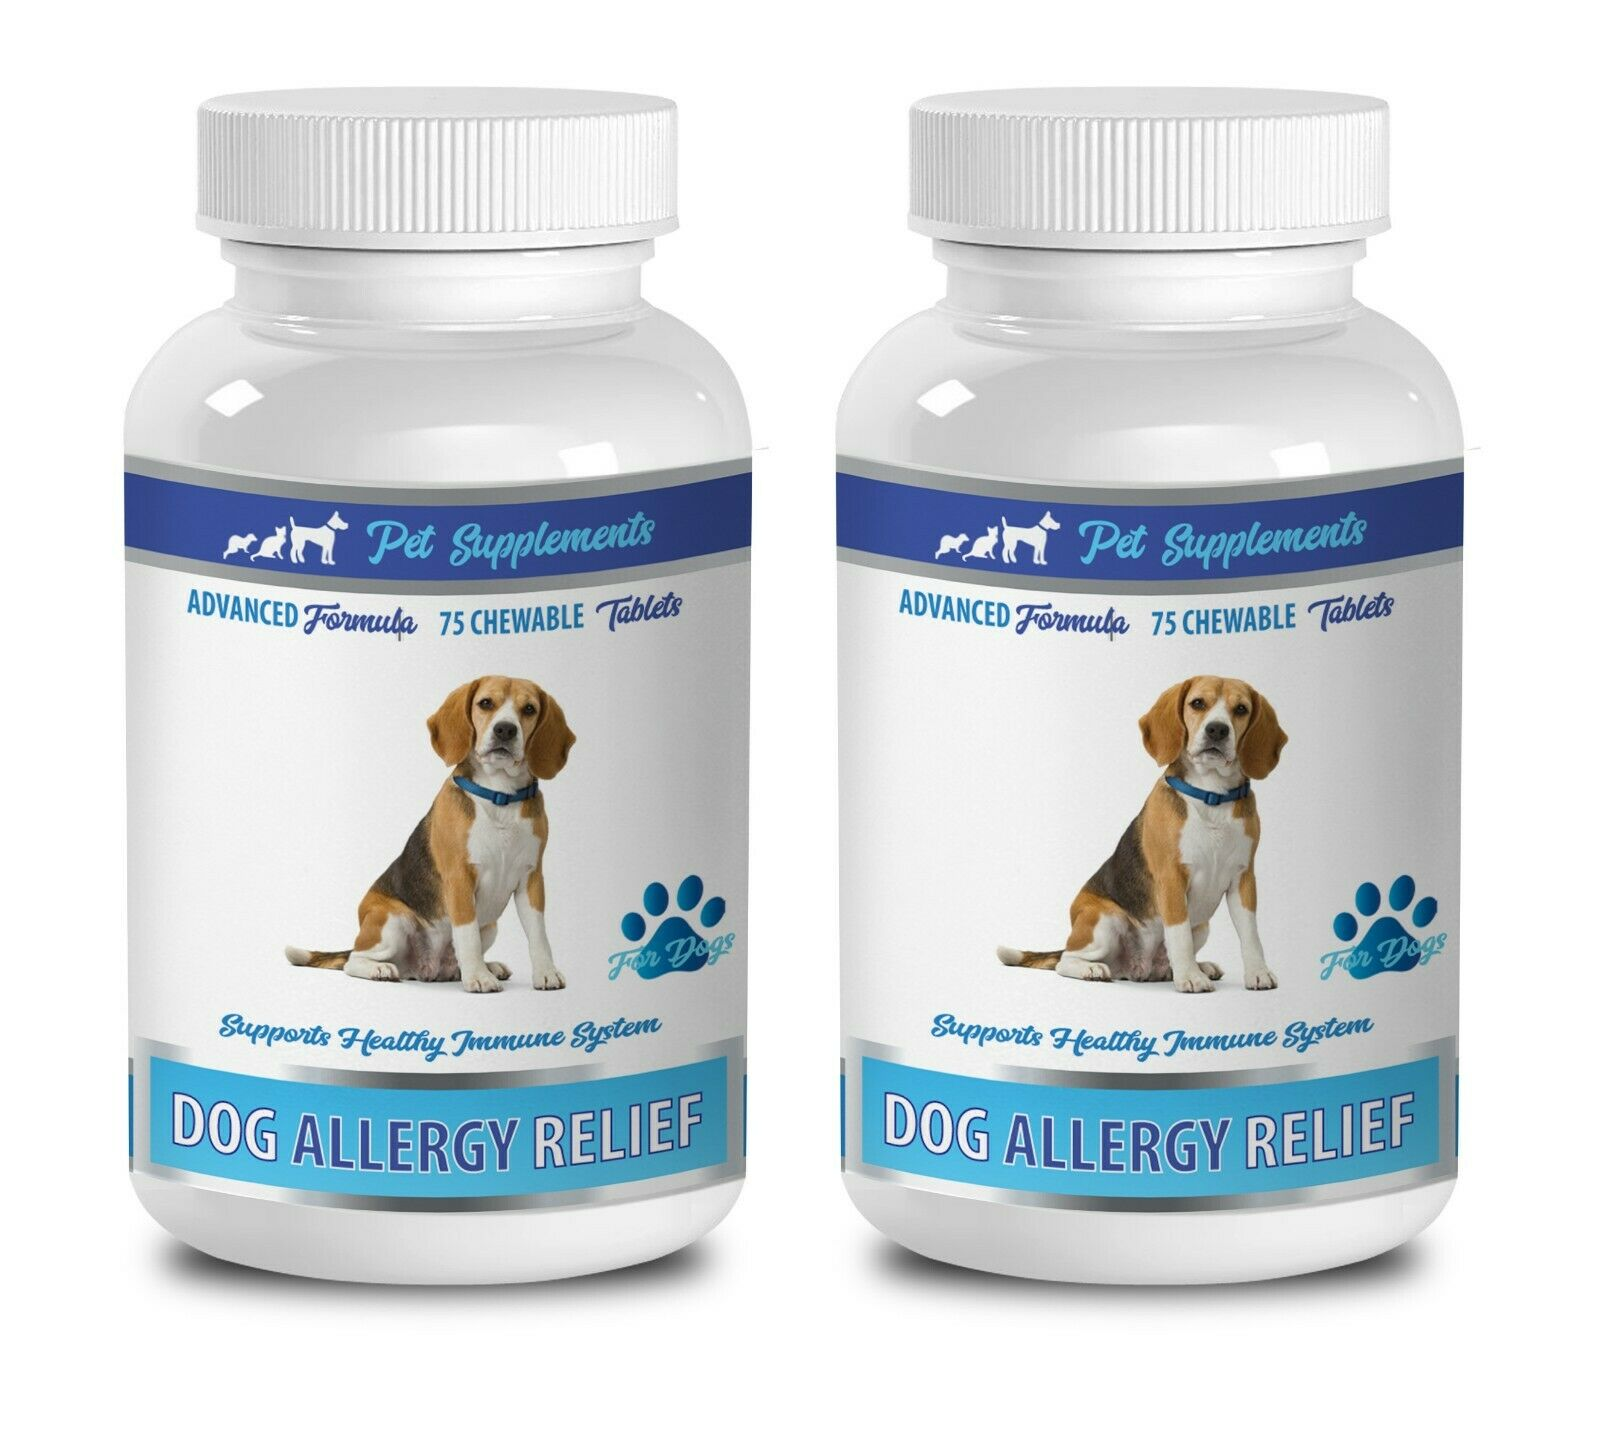 Immune booster dogs - DOG ALLERGY RELIEF - dog licorice 2B